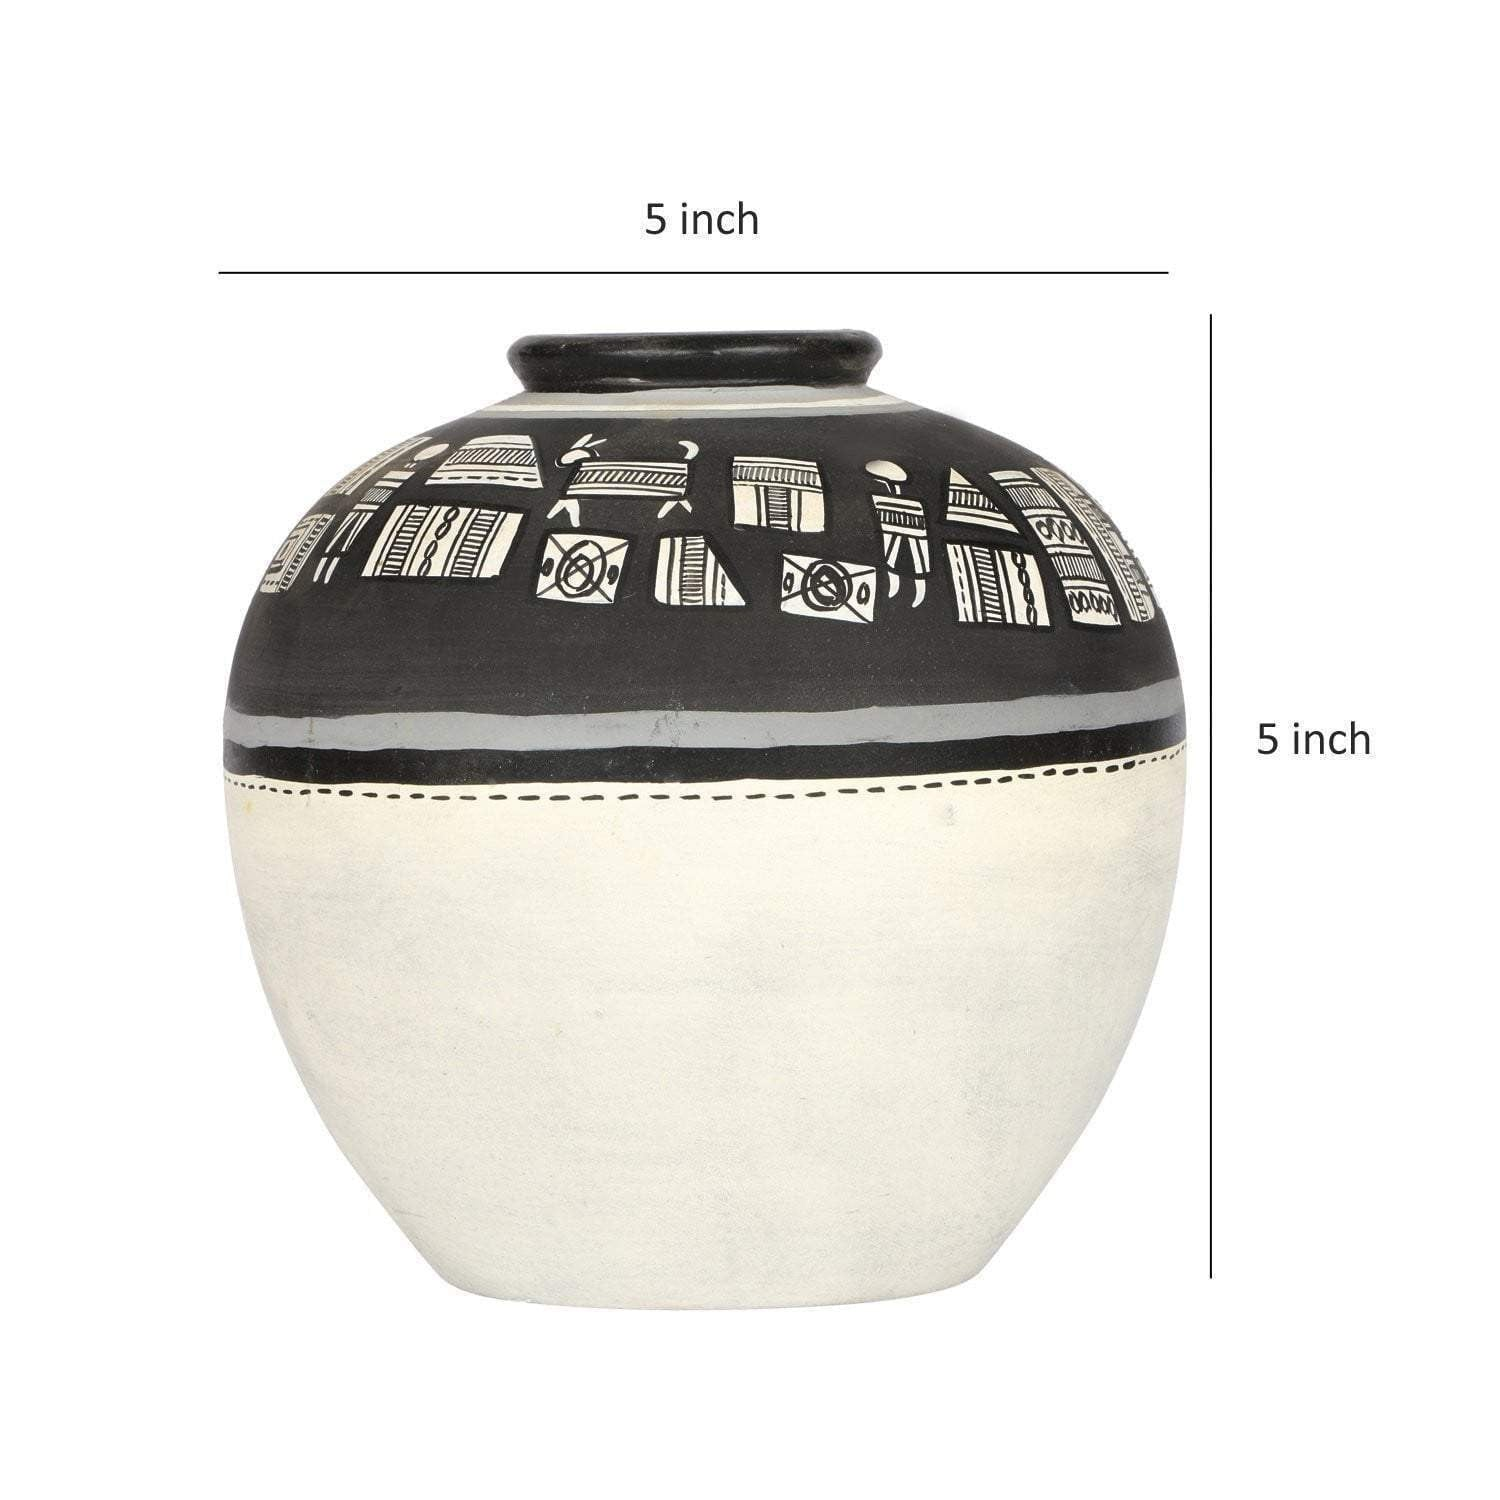 Terracotta Black And White Hand Painted Decorative Vases